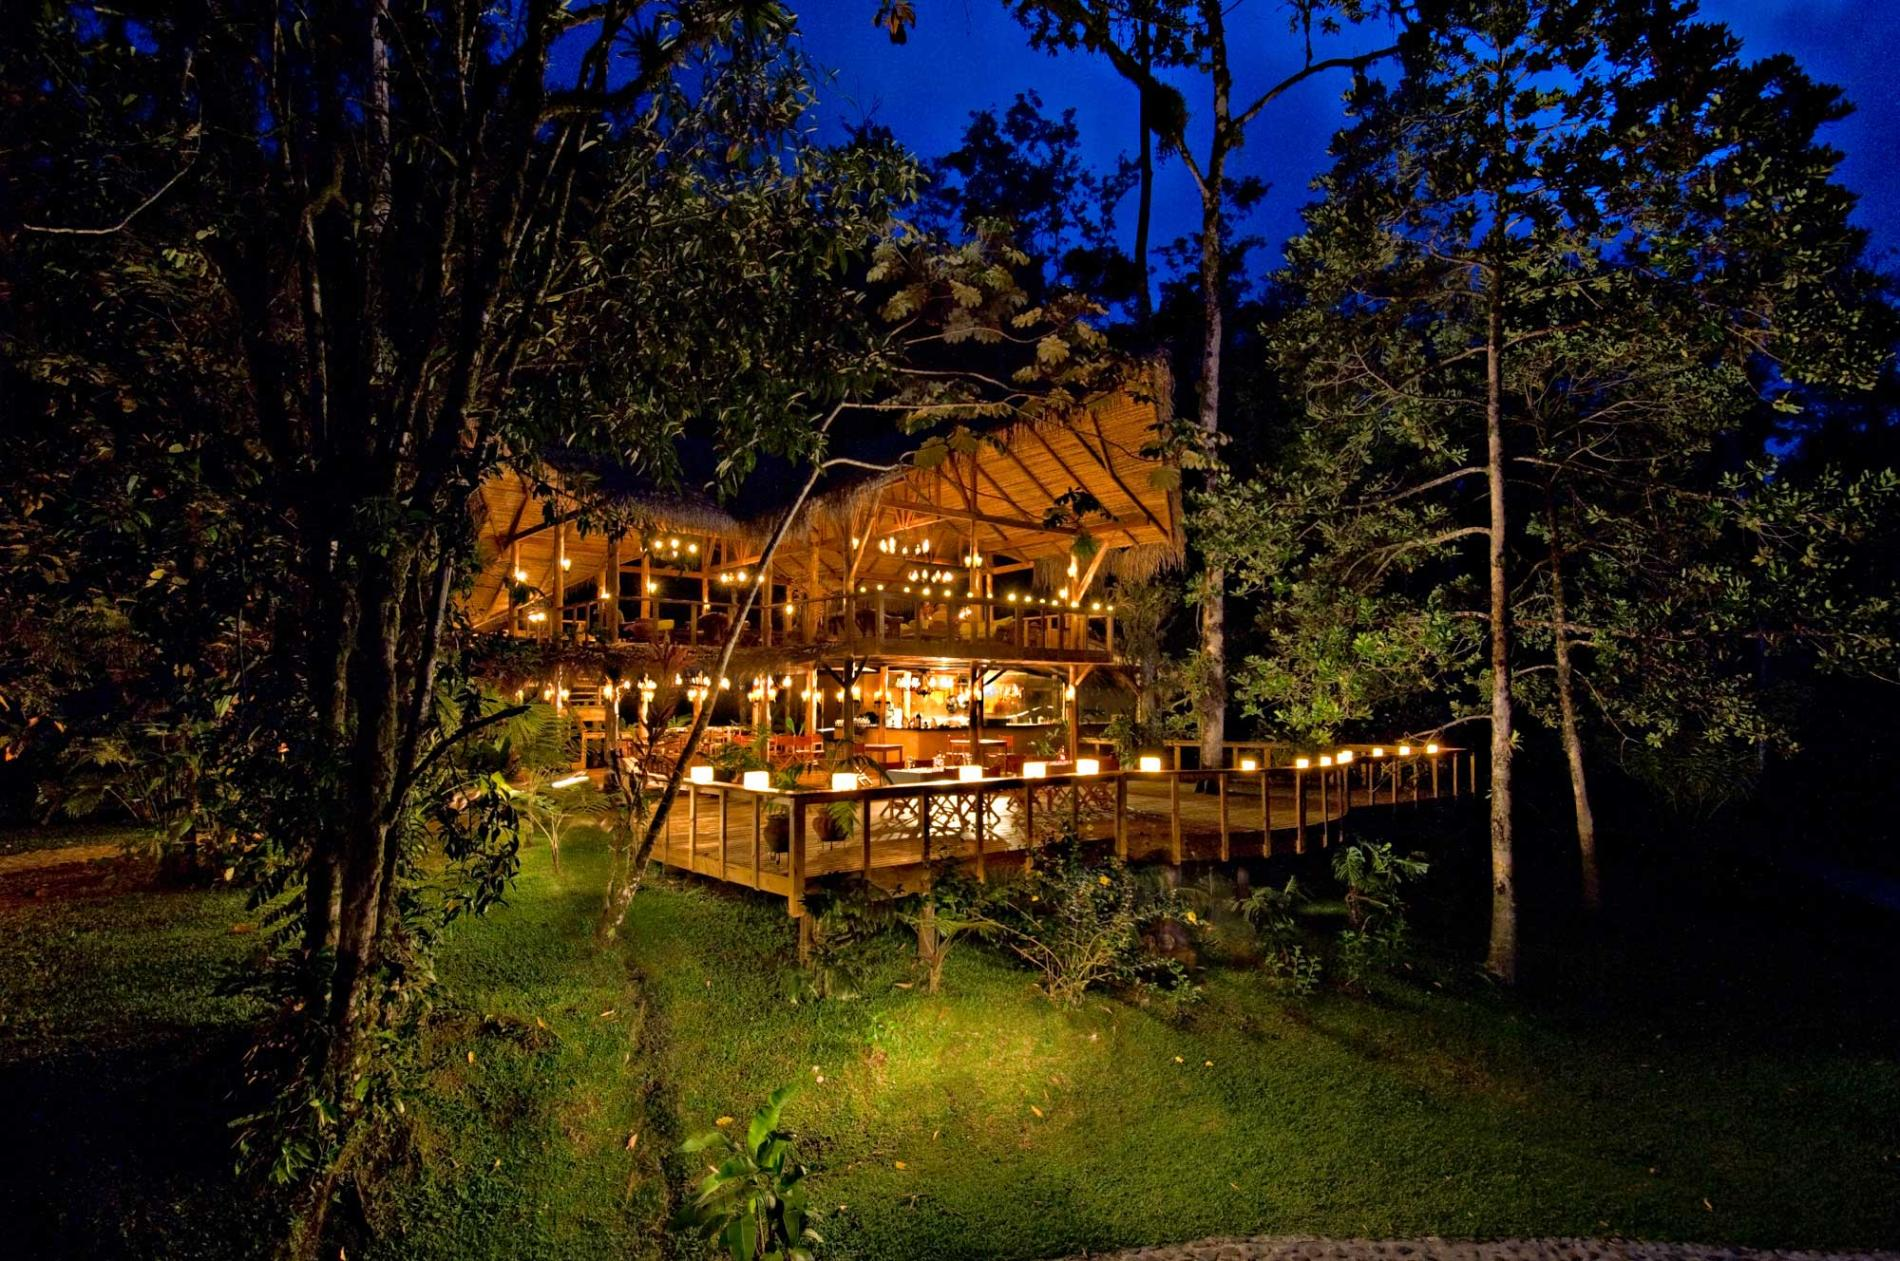 Pacuare Lodge illuminated with lanterns. Electricity use is minimal.